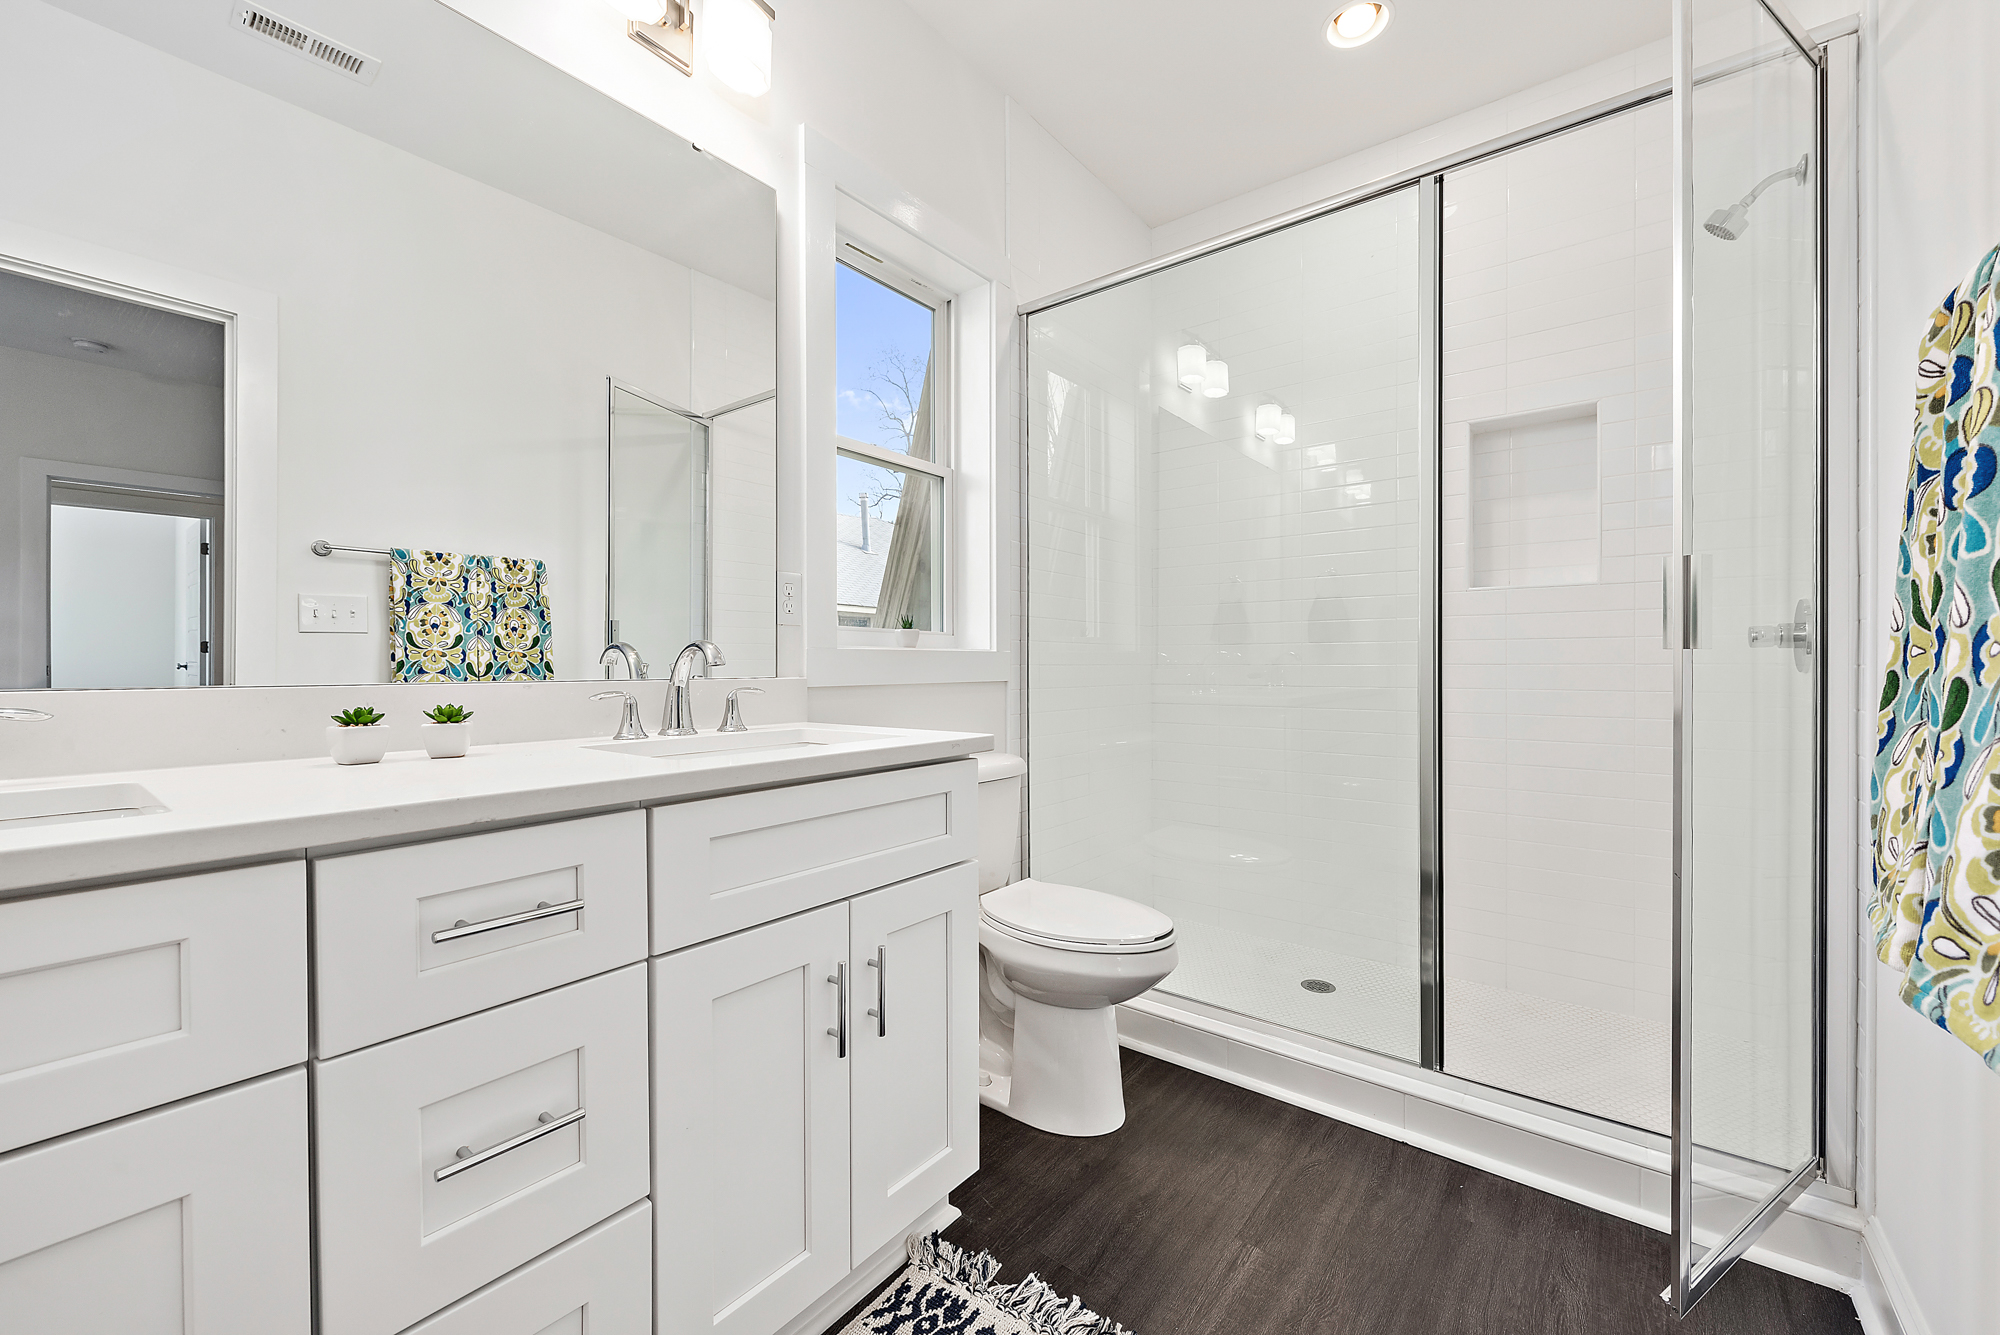 Quartz, Granite & Marble Countertops in Kitchen and Baths. Variety of Tiled backsplashes, Showers & Bathrooms.Semi-Framless or Frameless Glass Shower Door Options. -